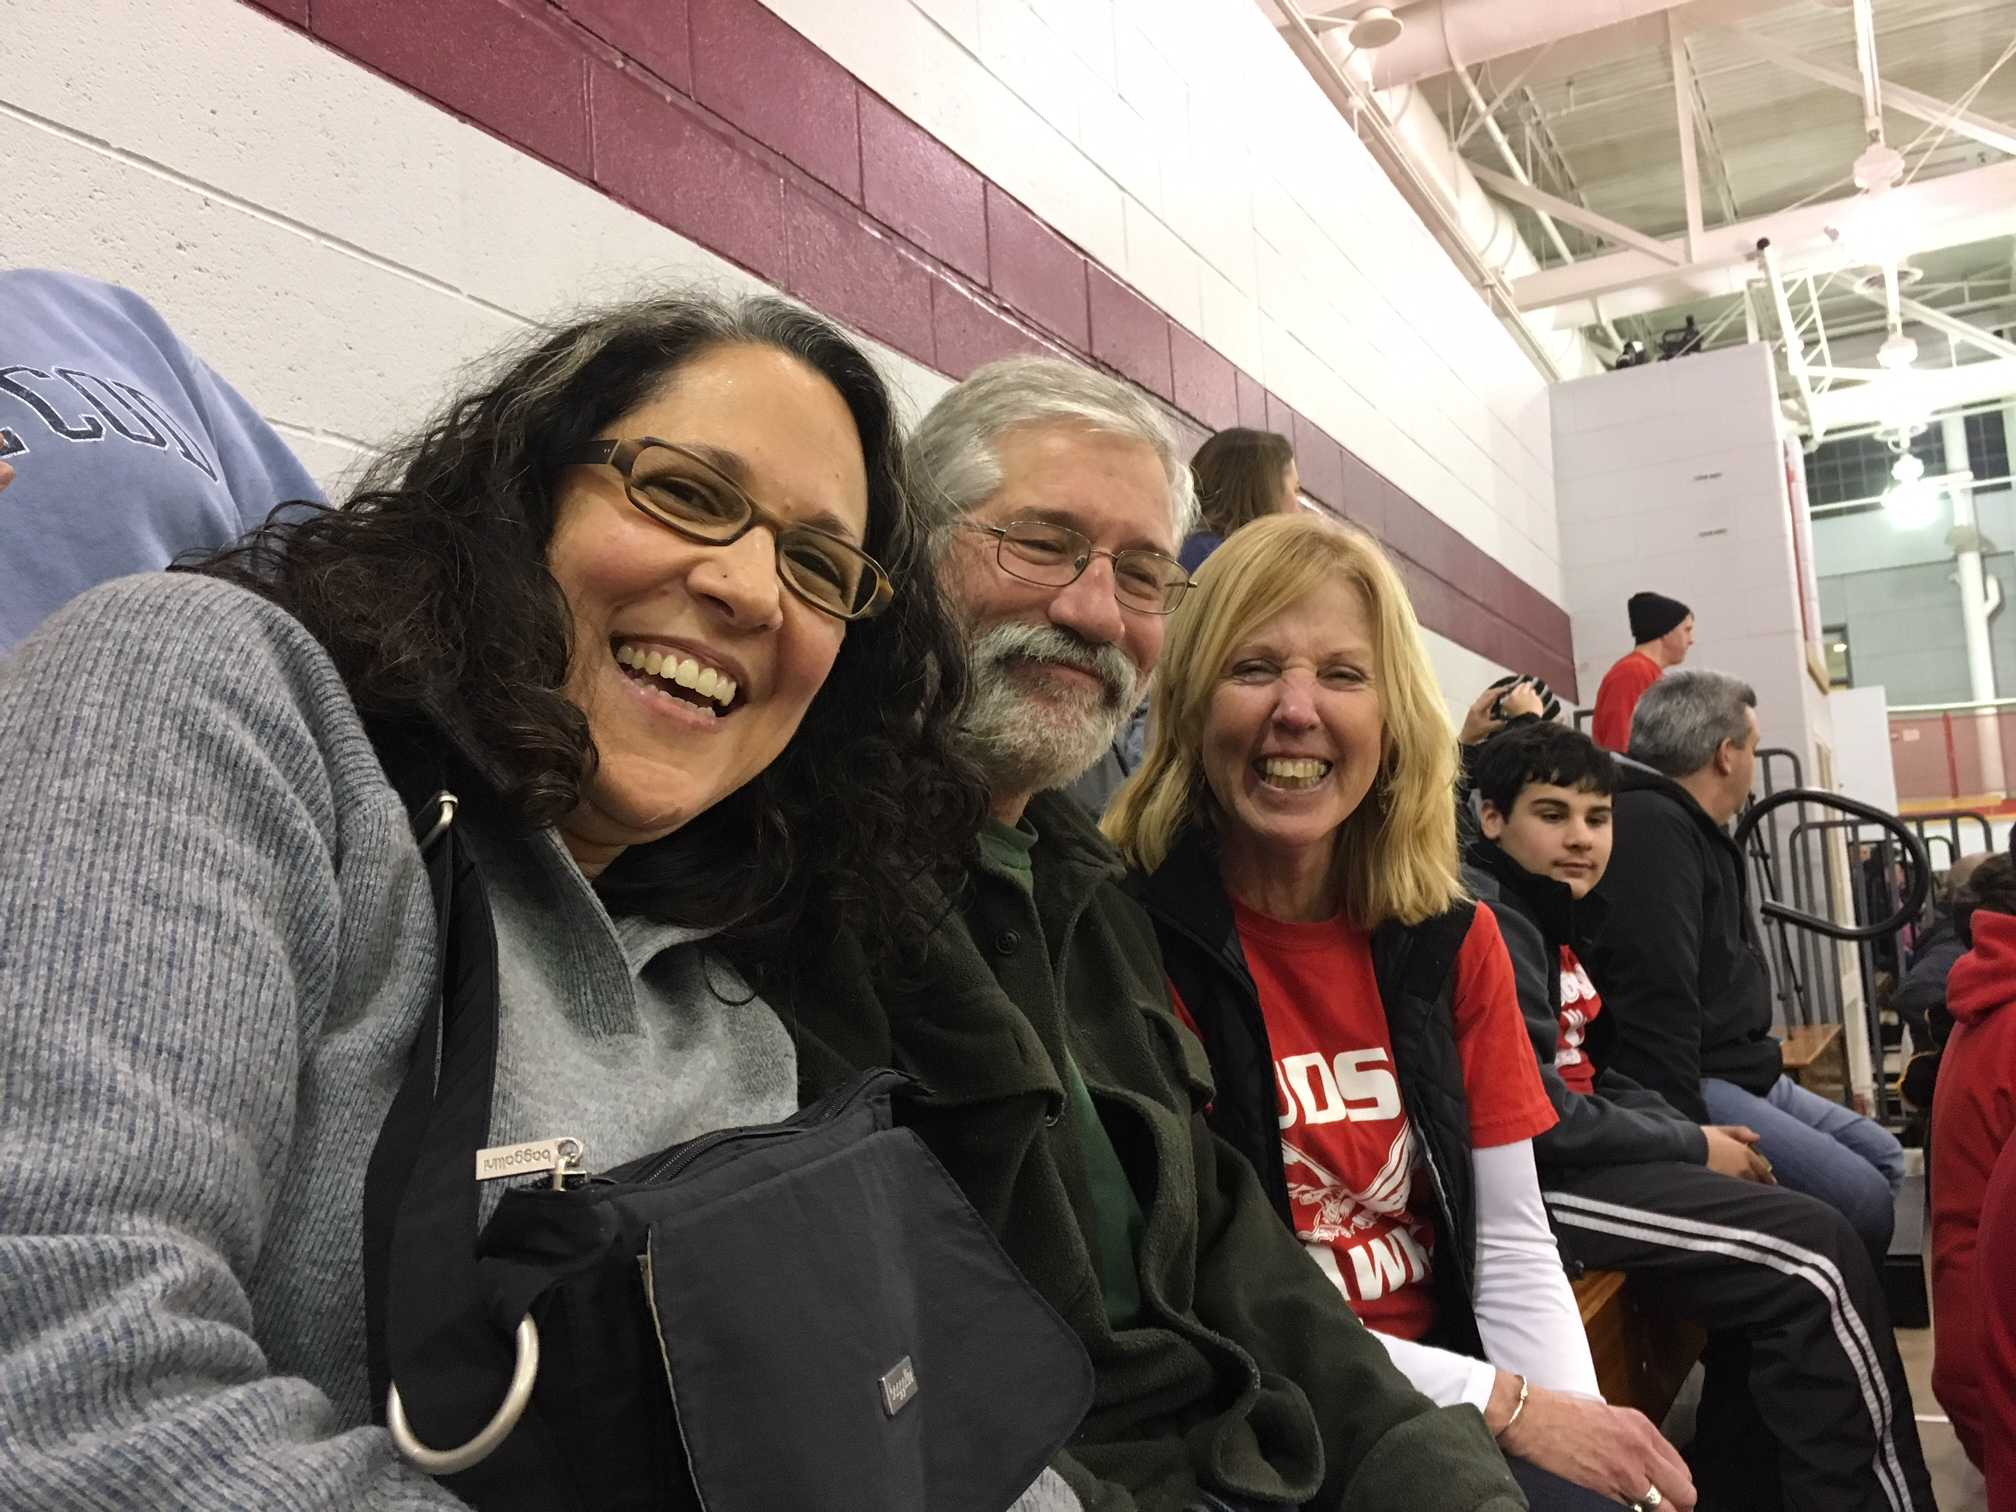 Kathy Murphy attends Friday Night Out with Joan Marchese and Paul D'Alessandro. I Submitted Photo